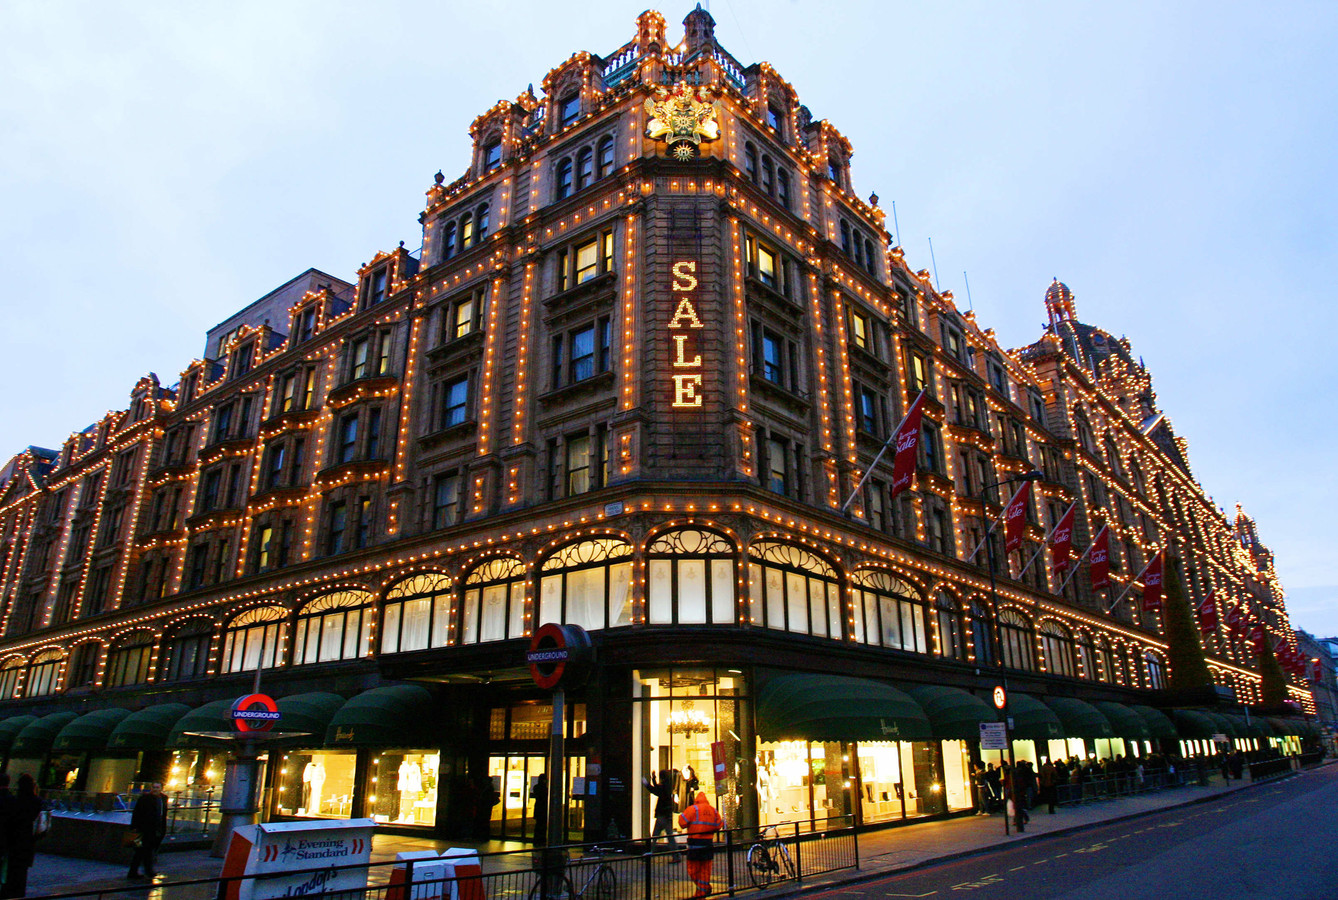 Le magasin Harrods.